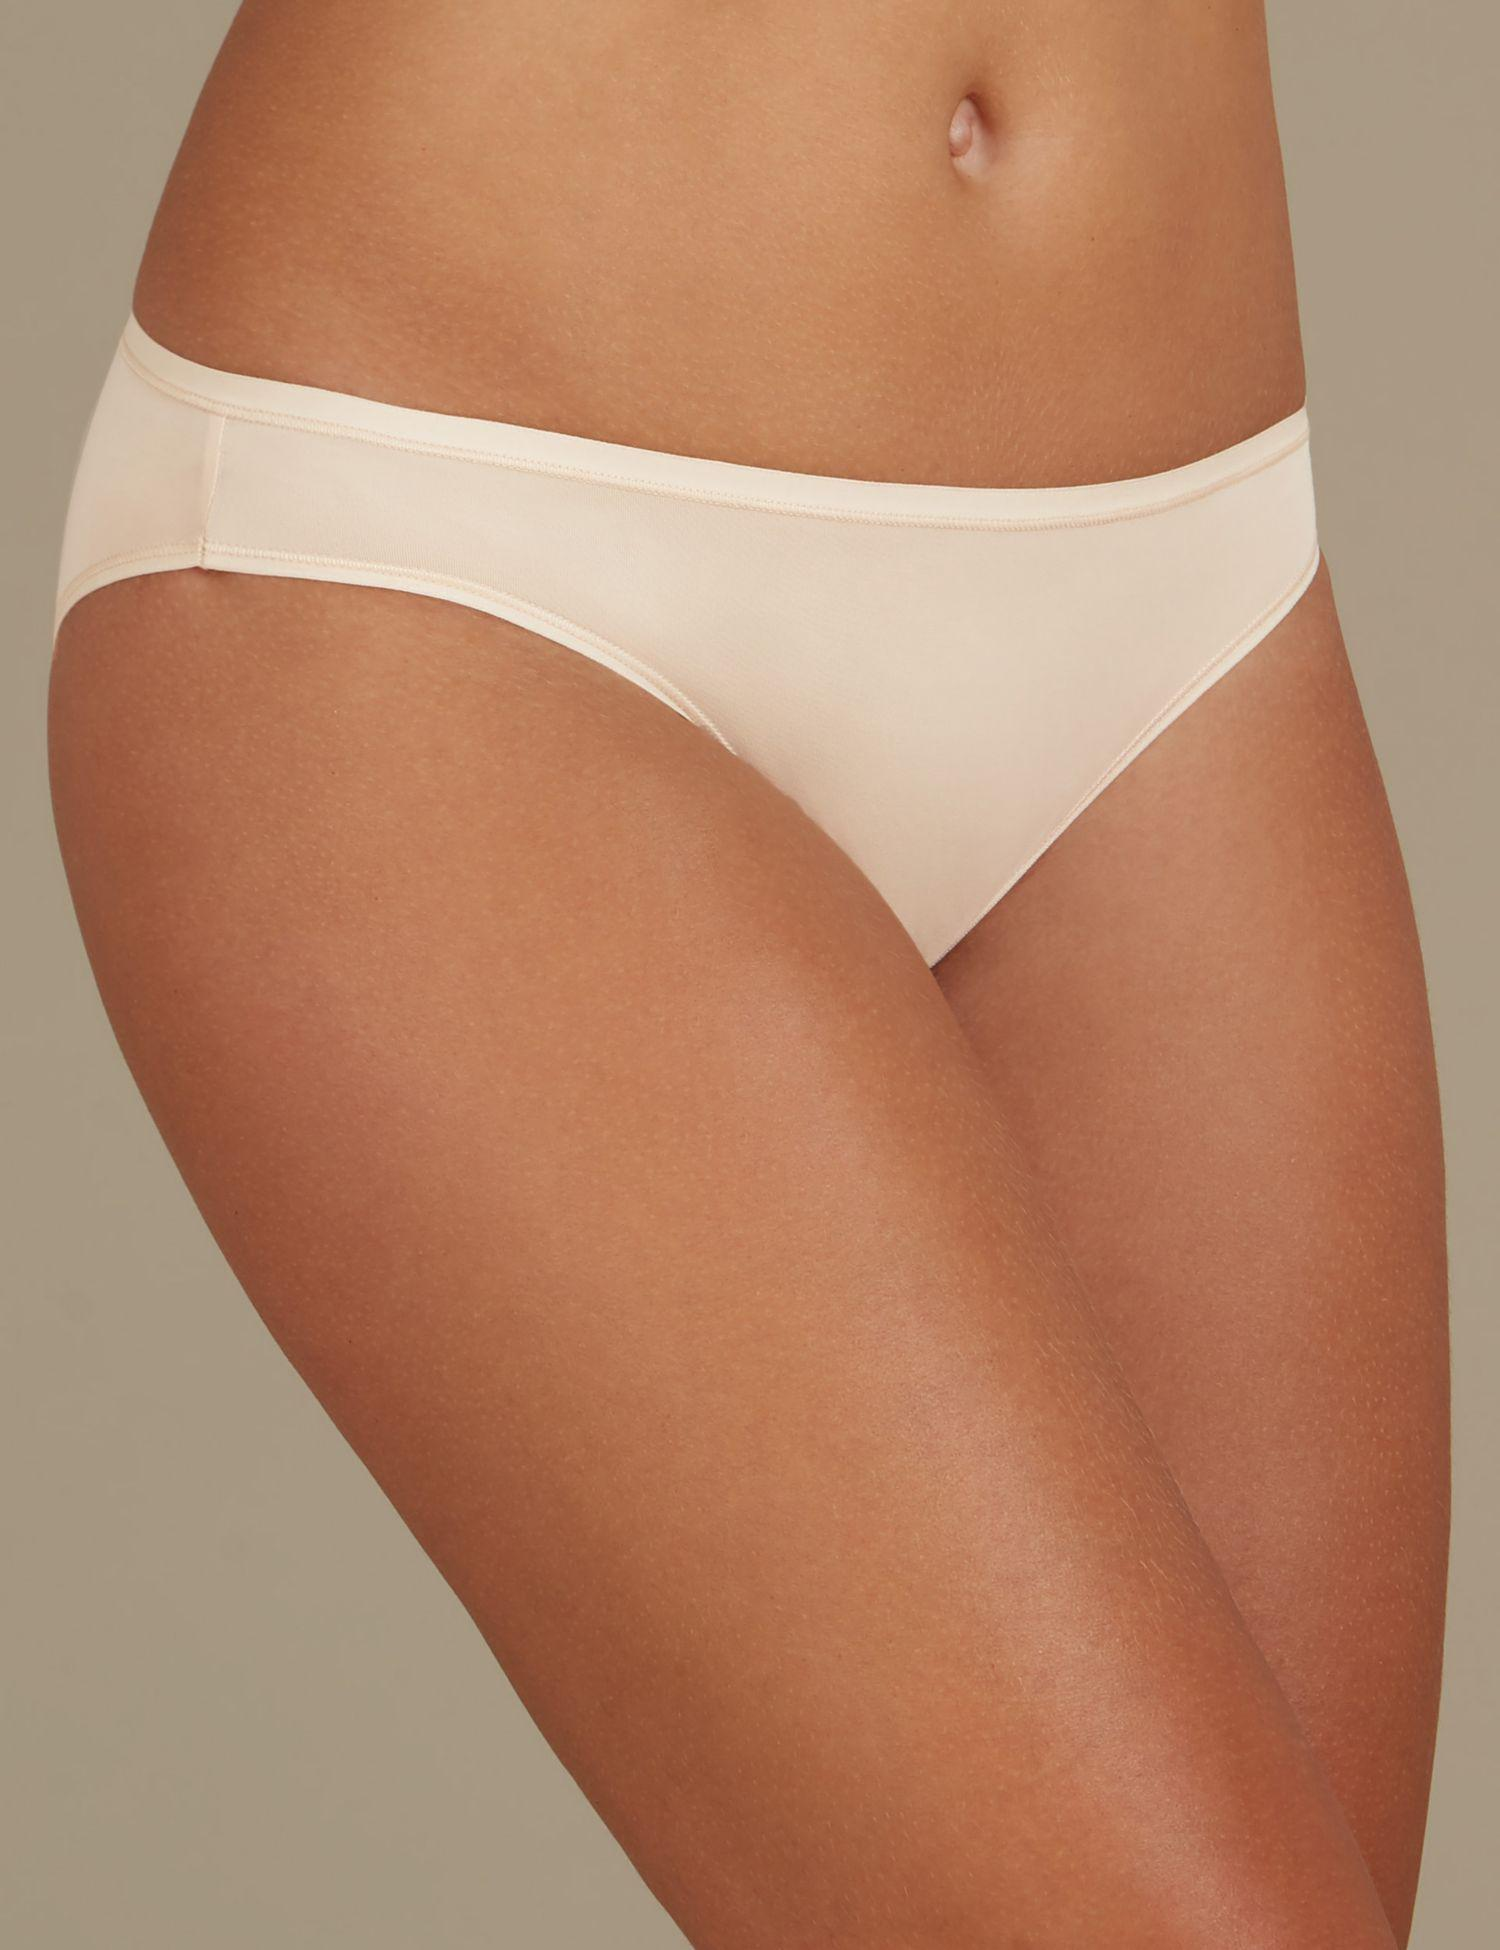 b1d8d49196bb Marks & Spencer. Women's Natural 5 Pack No Vpl Microfibre Low Rise Bikini  Knickers